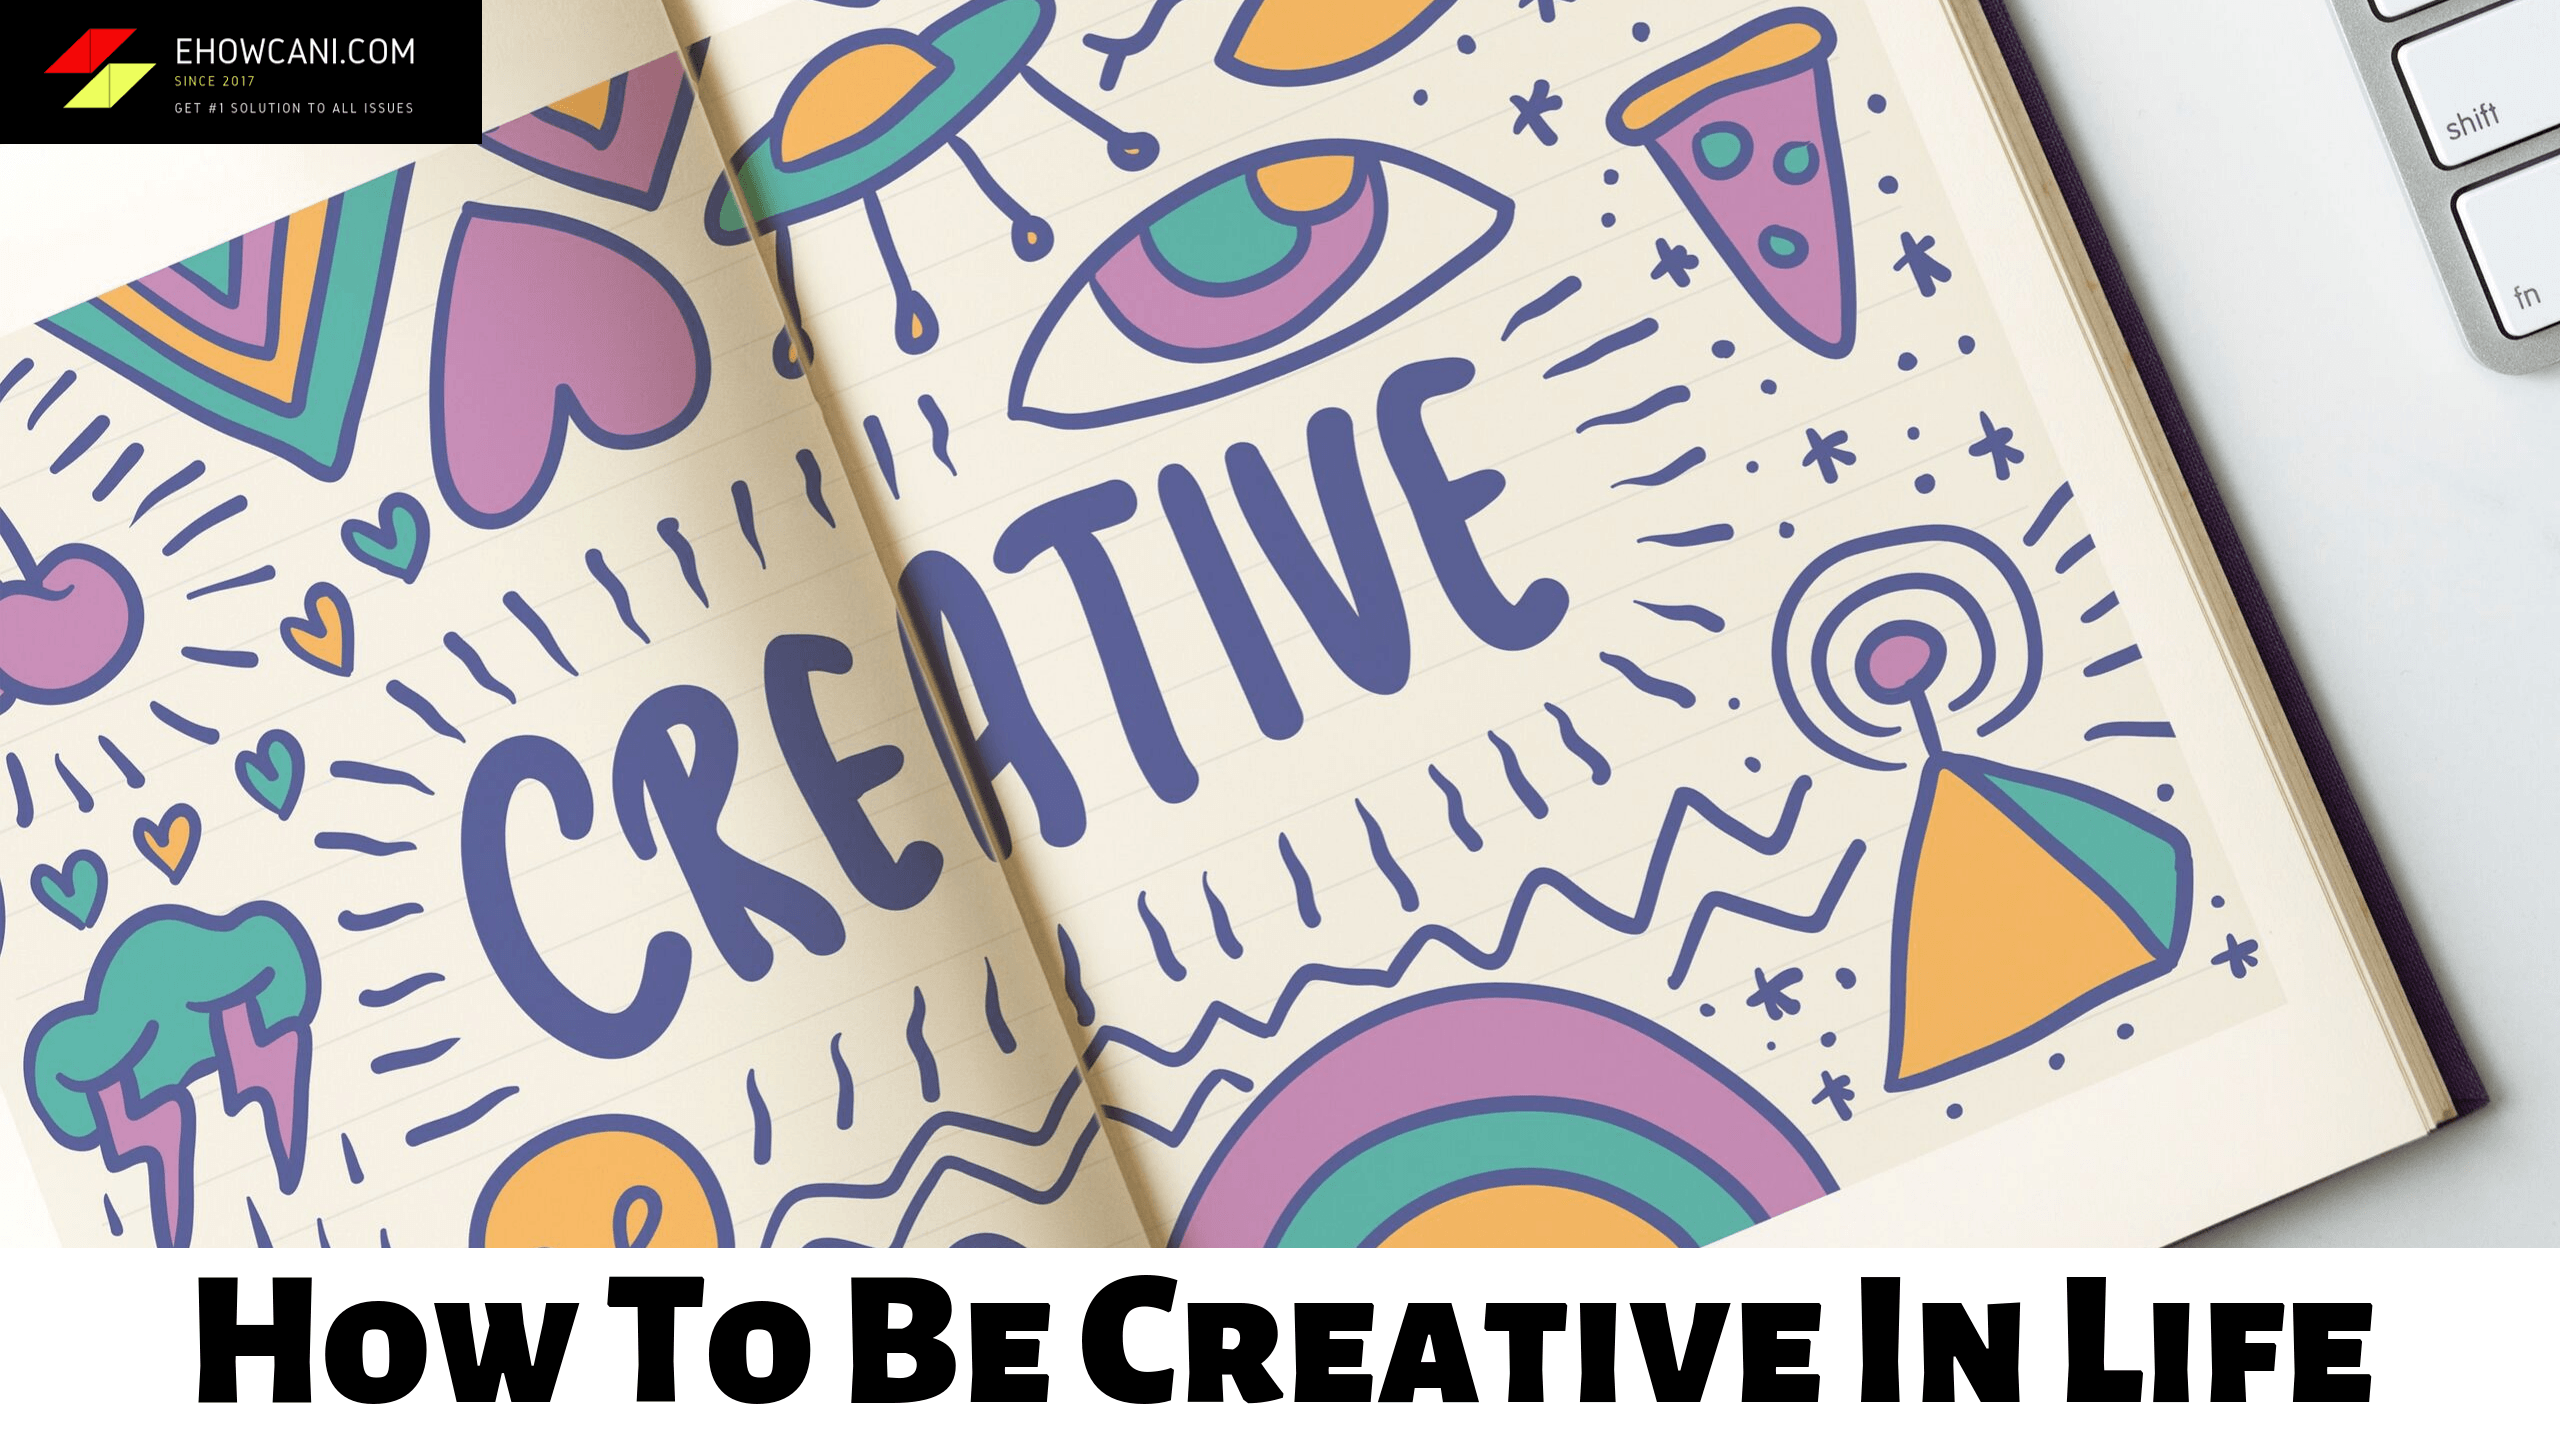 How to be creative in life